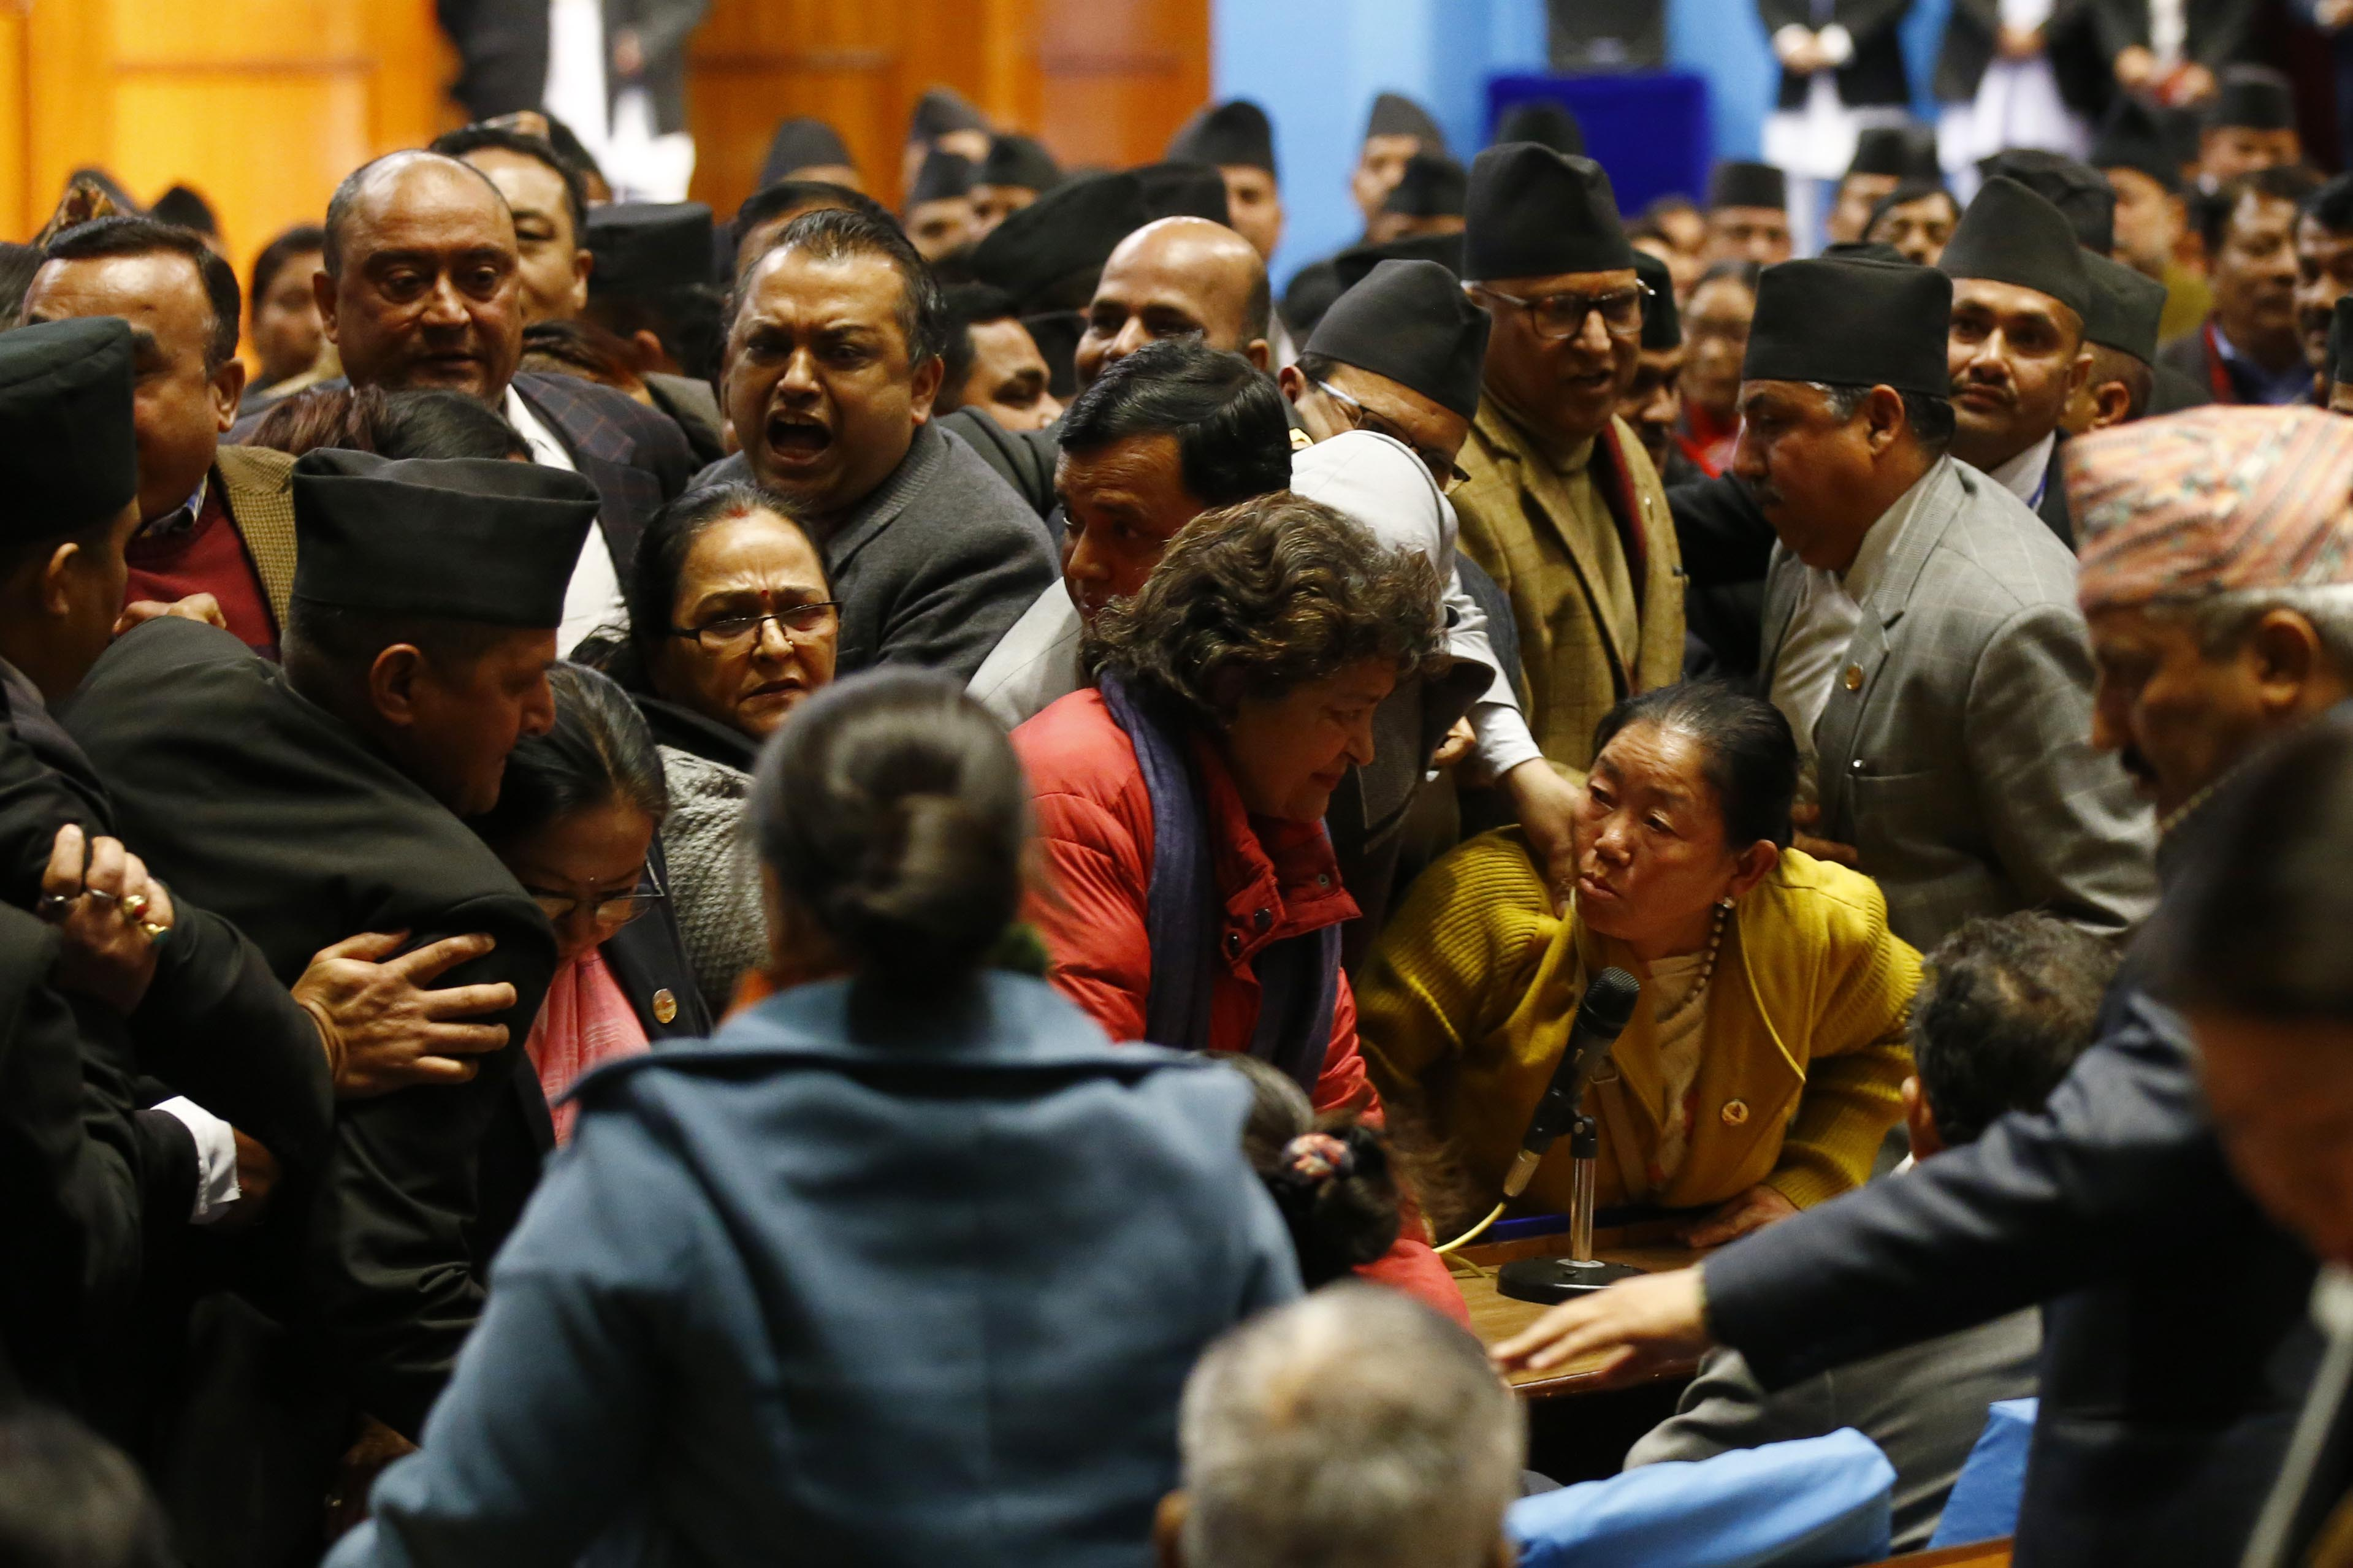 Nepali Congress lawmakers shouting slogans against the National Medical Education Bill in the well of the House of Representatives, in Kathmandu, on Friday, January 25, 2019. The House of Representatives (HoR) passed the National Medical Education Bill amid commotion. Photo: Skanda Gautam/THT